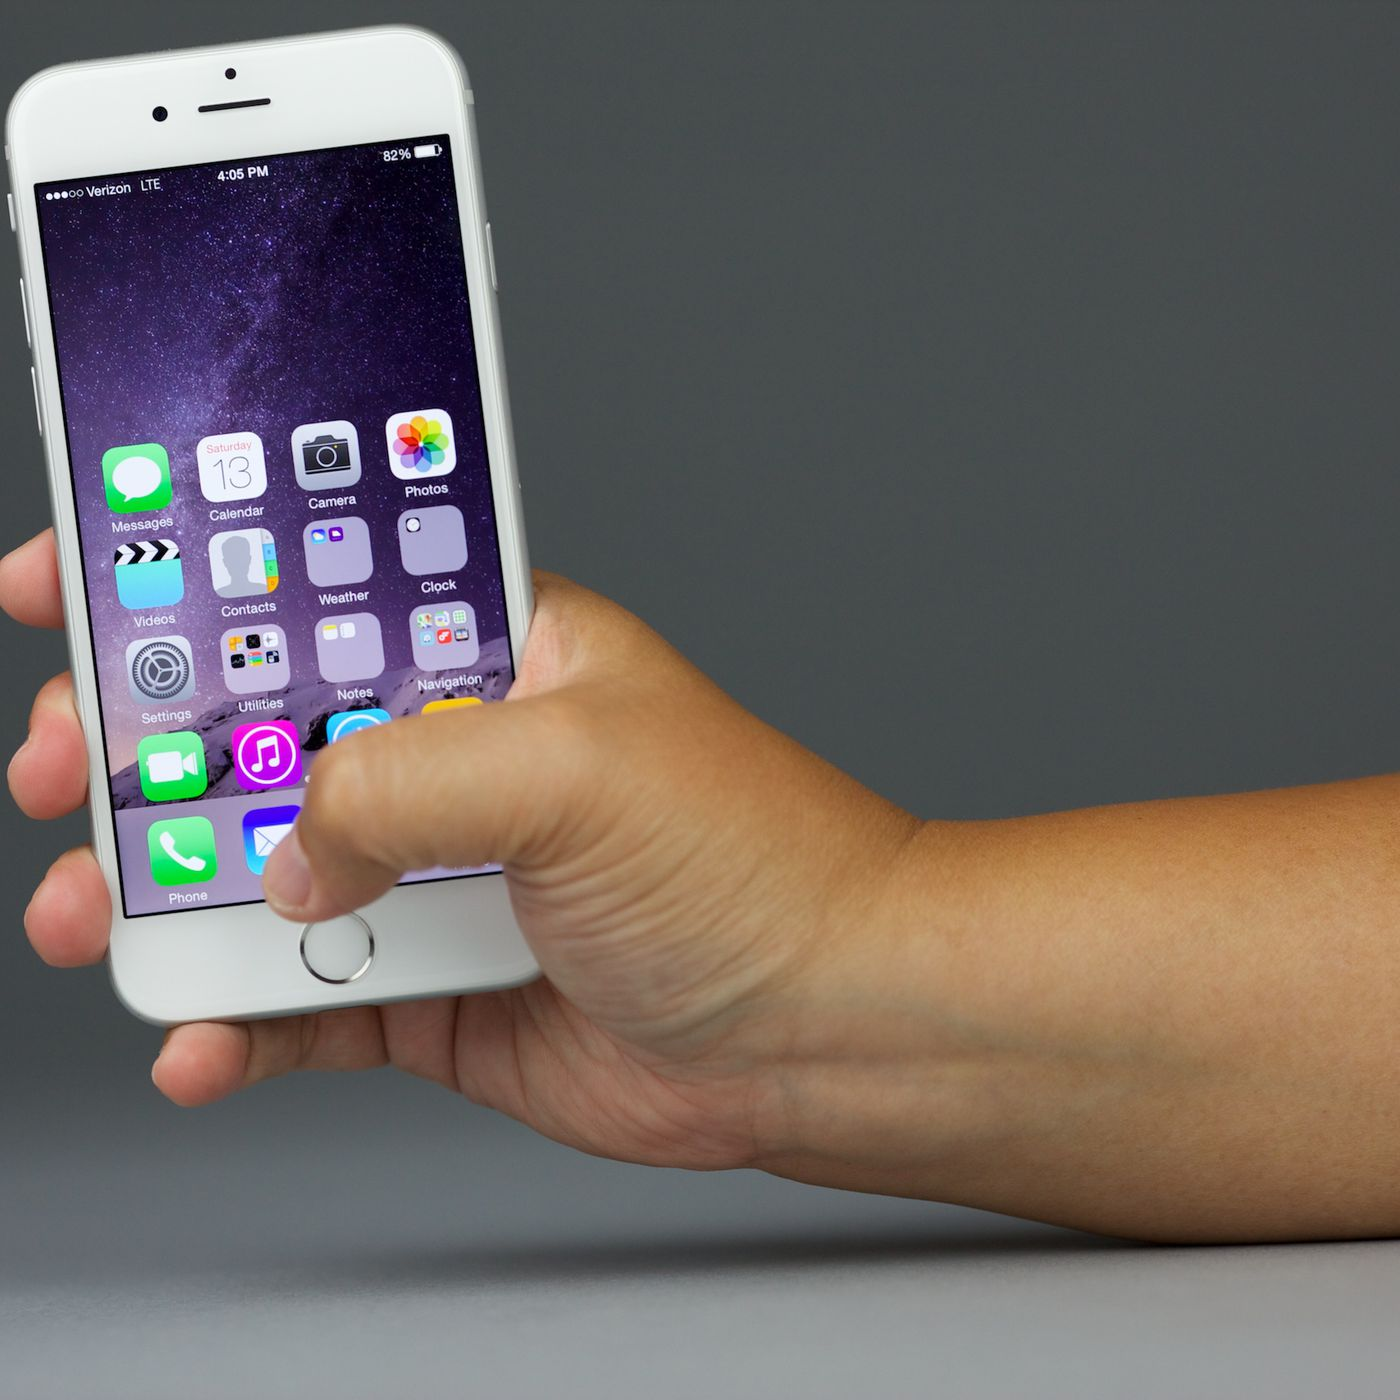 Your Guide to Getting Through iOS 8 Update-Gate - Recode